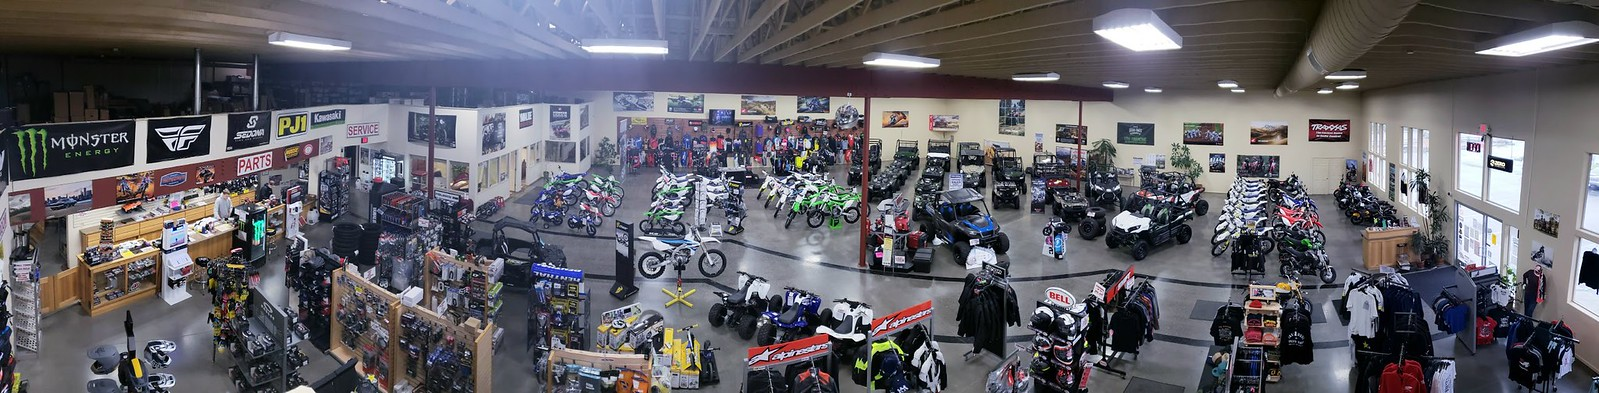 Pacific Motorsports located in Eureka, CA